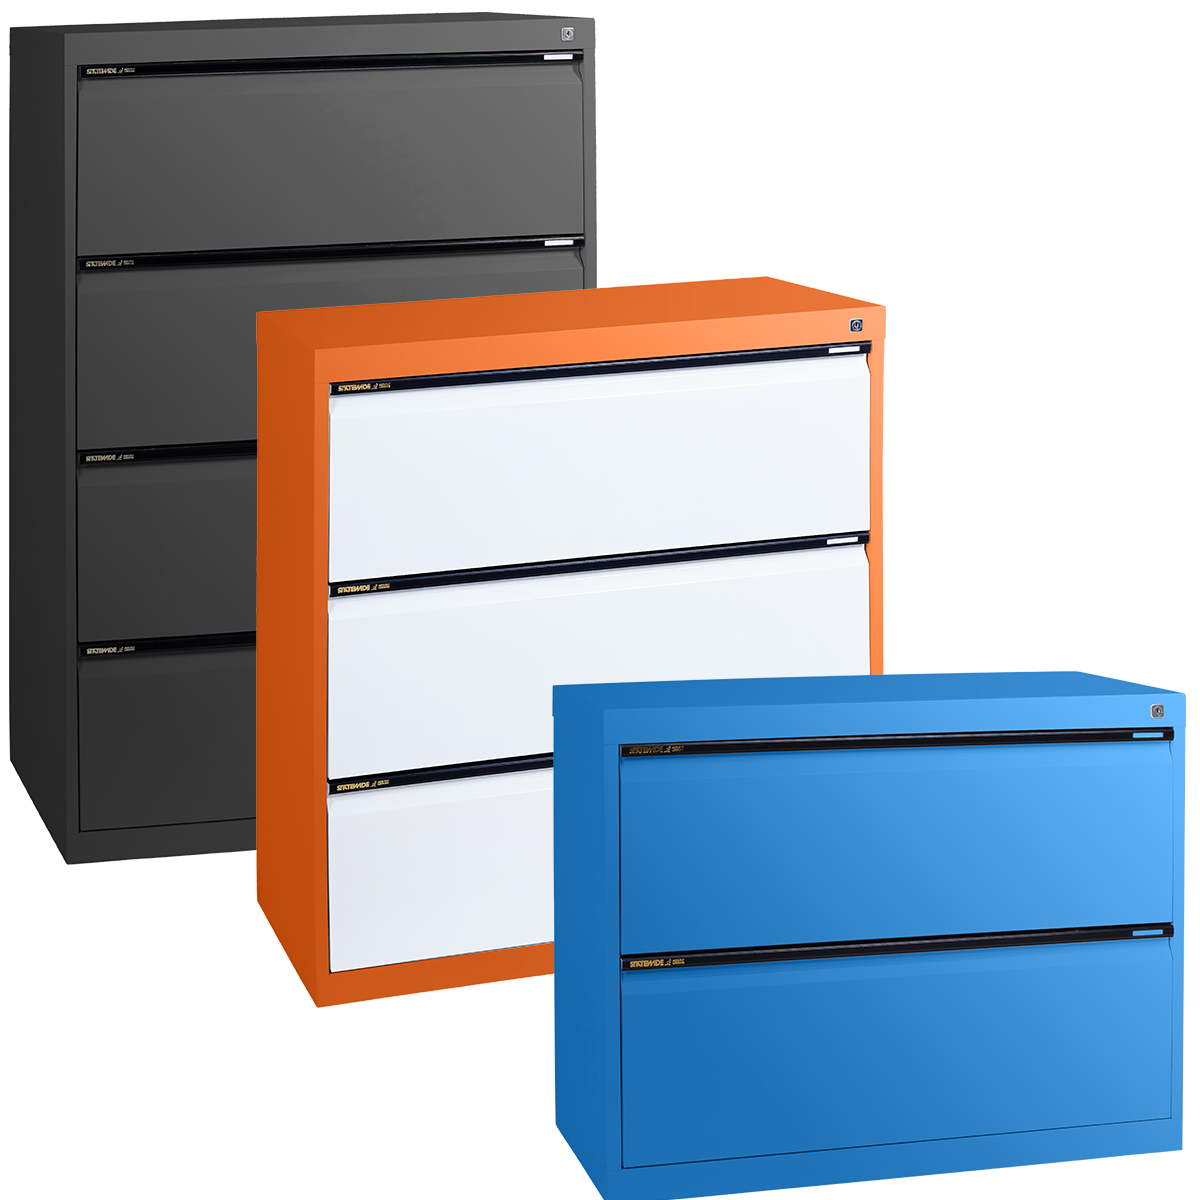 3 Reasons Why Lateral Filing Is Better In A Busy Office